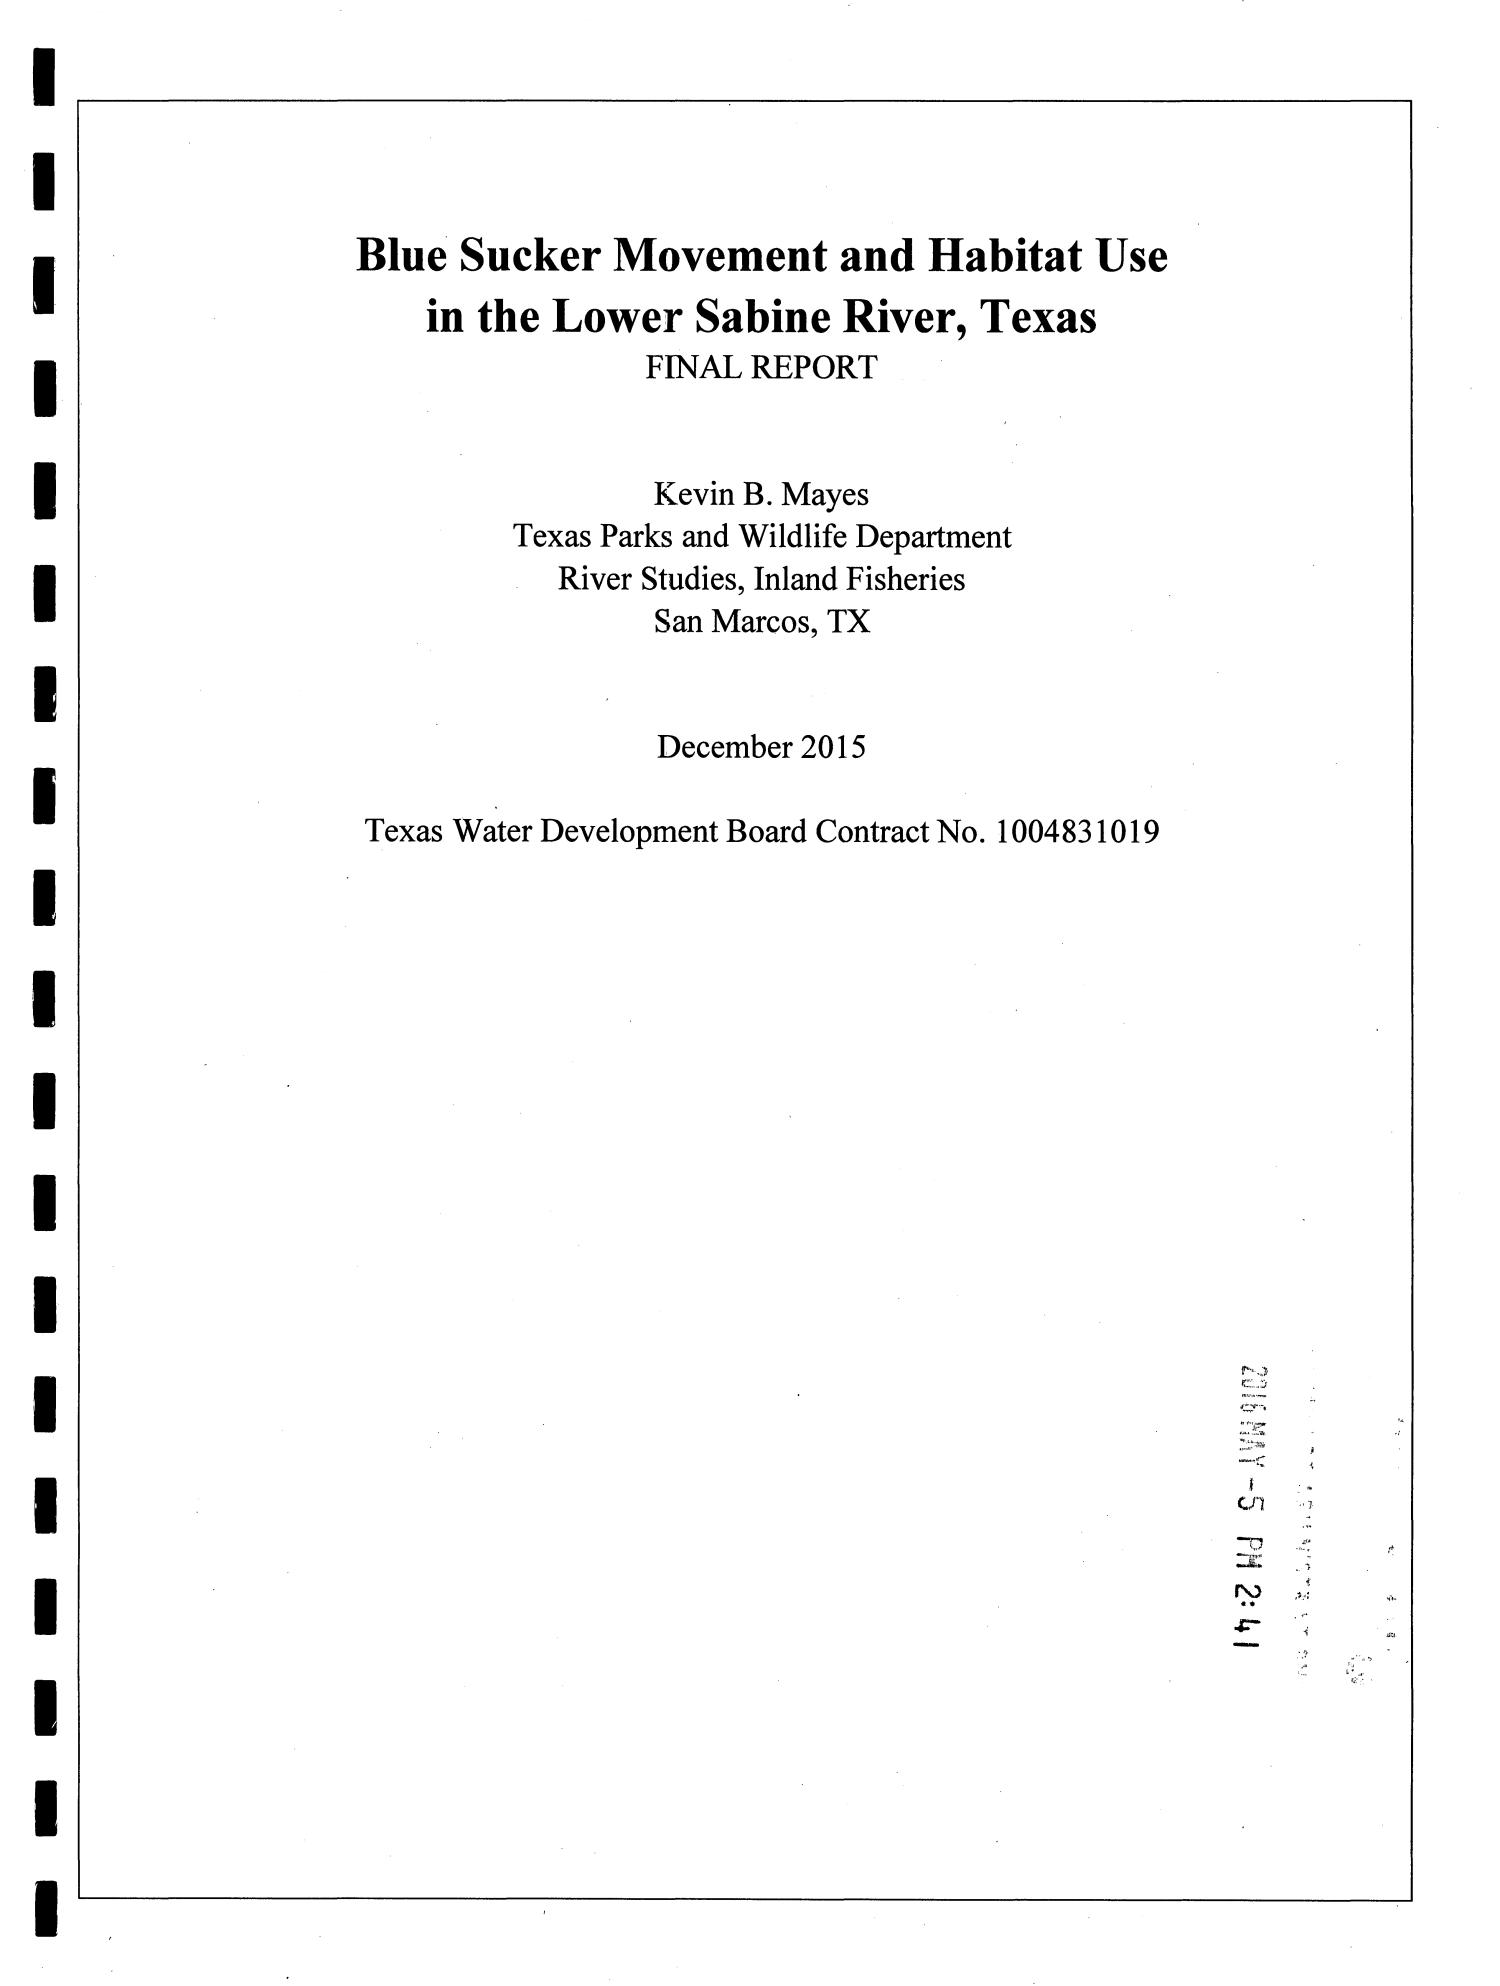 Blue Sucker Movement and Habitat Use in the Lower Sabine River, Texas                                                                                                      Title Page